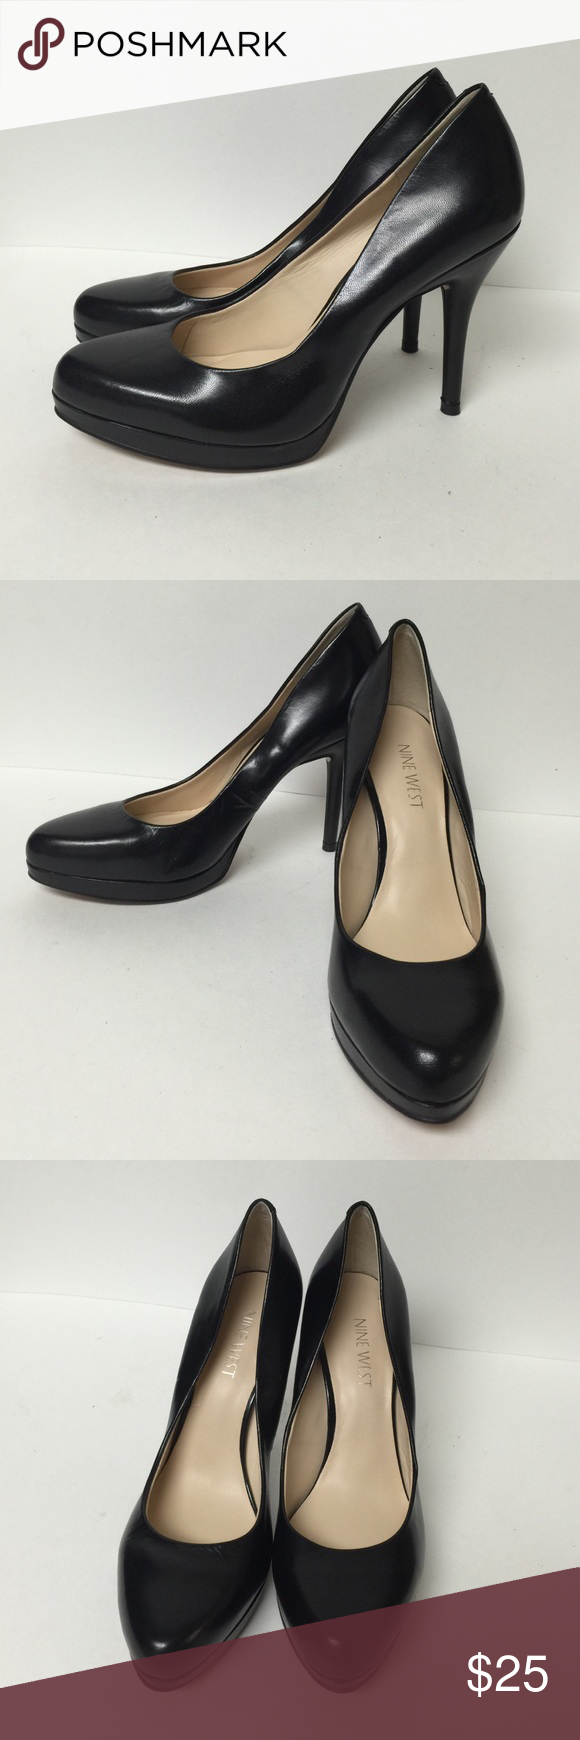 New Nine West black leather pumps Worn in store. Stickers still attached to bottoms. Must have in every closet, classic black pumps. Nine West Shoes Heels